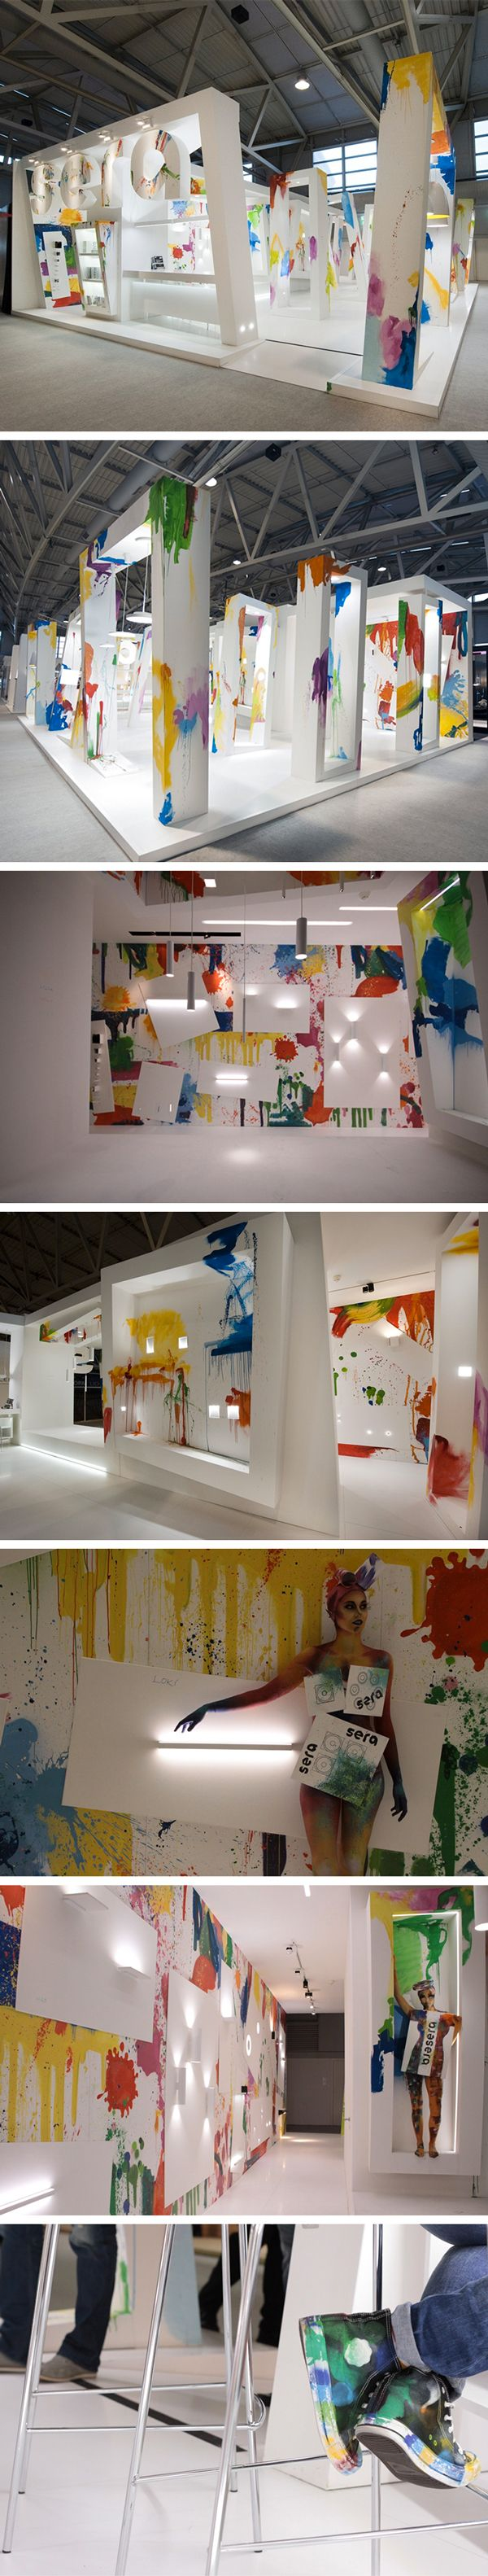 Exhibition stand @ Light + Building •Stand Design: Xilos Design Studio •Stand Build: Xilos Temporary Architecture